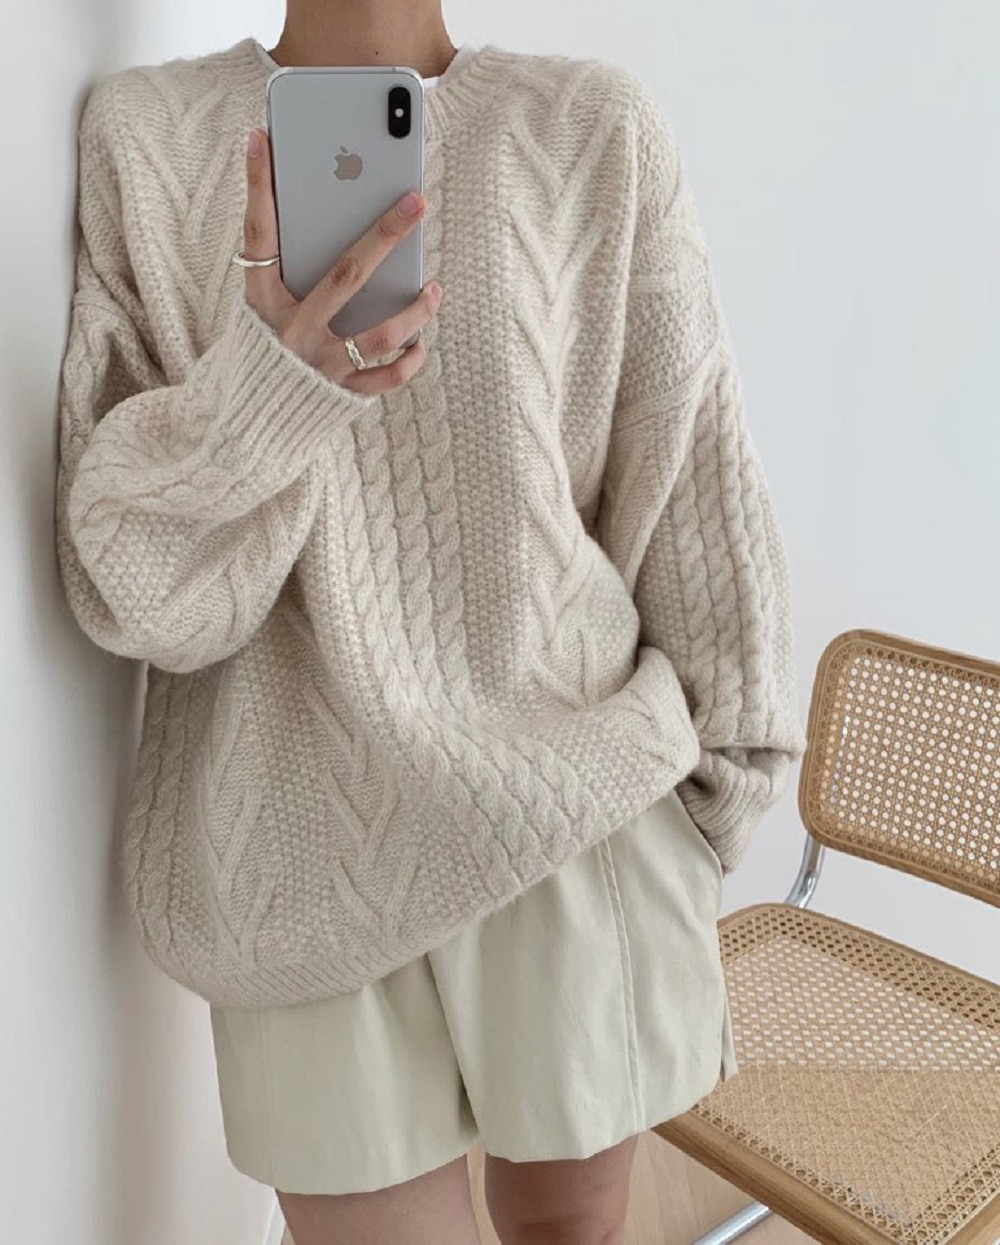 Bread knit